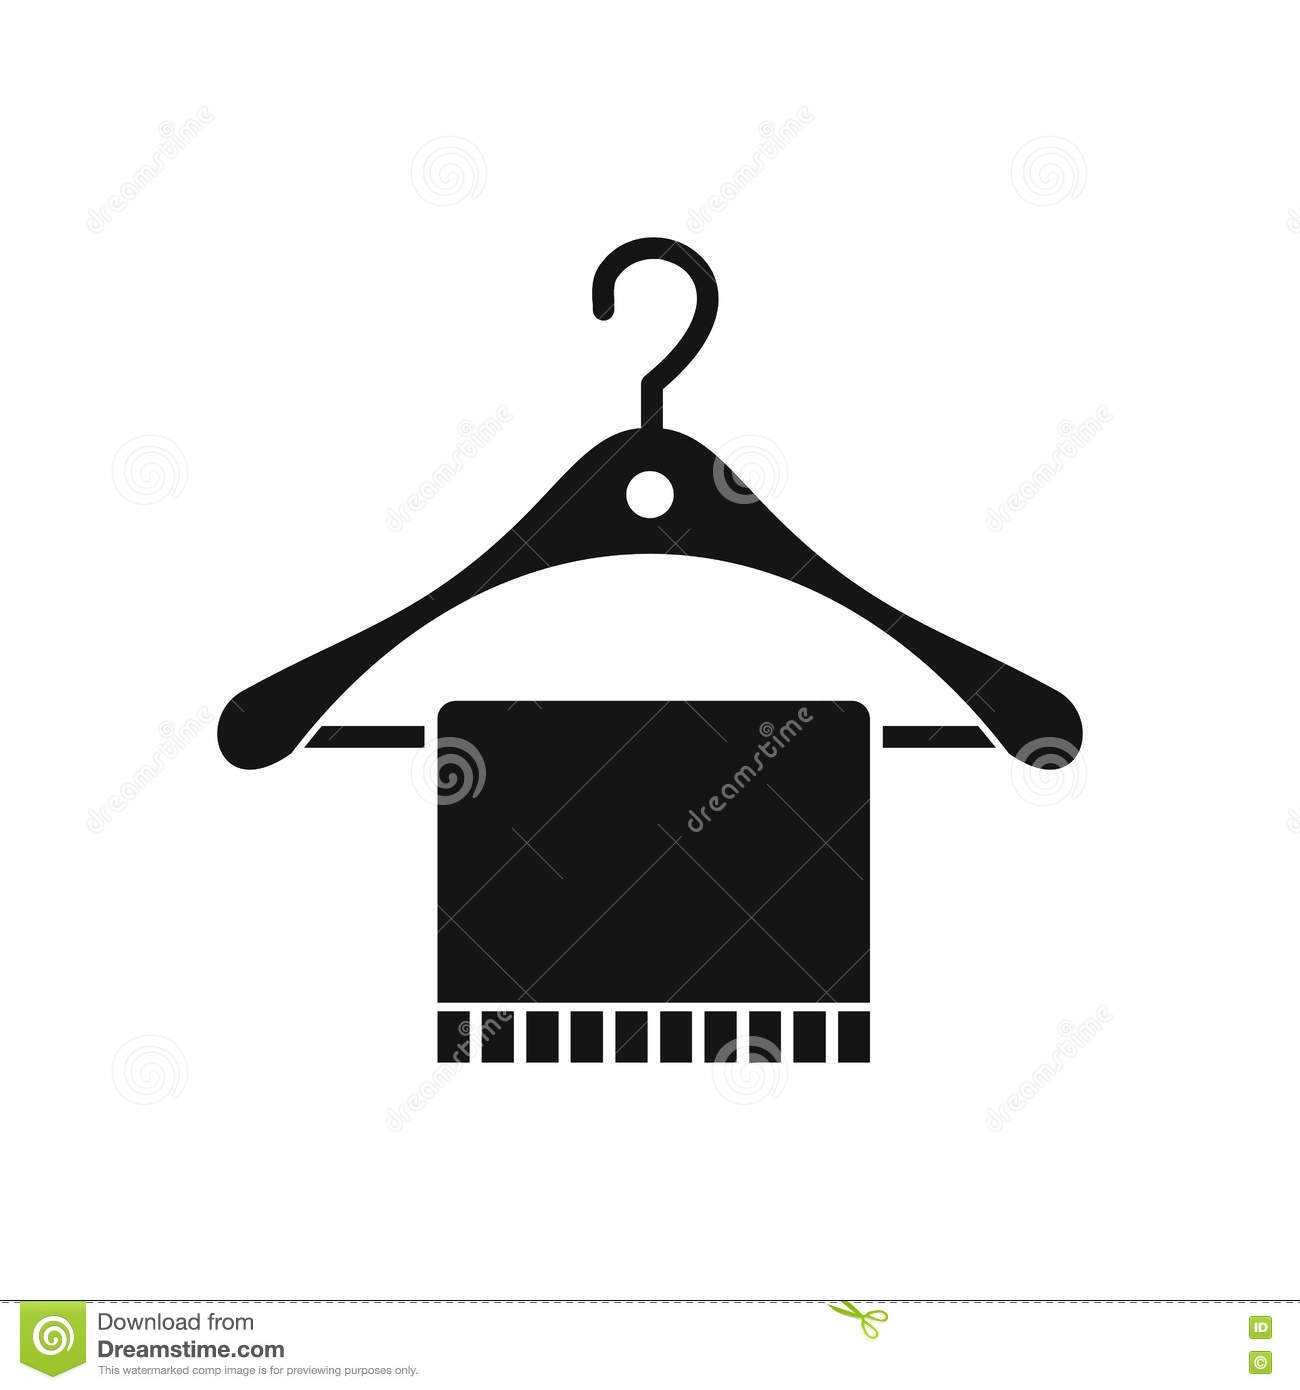 e95980e57ab1 Scarf on coat hanger icon in simple style on a white background vector  illustration. More similar stock illustrations